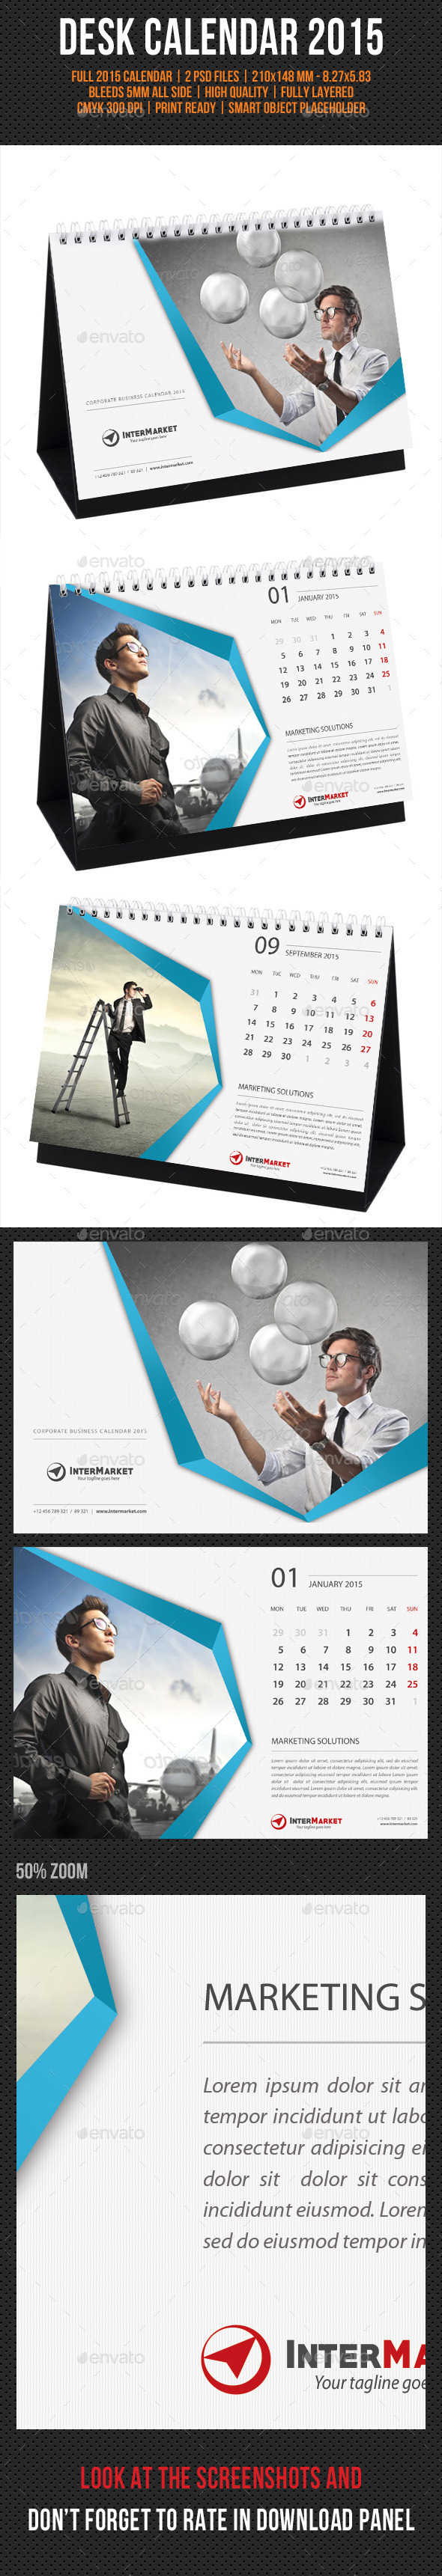 GraphicRiver Corporate Desk Calendar 2015 V02 9584033